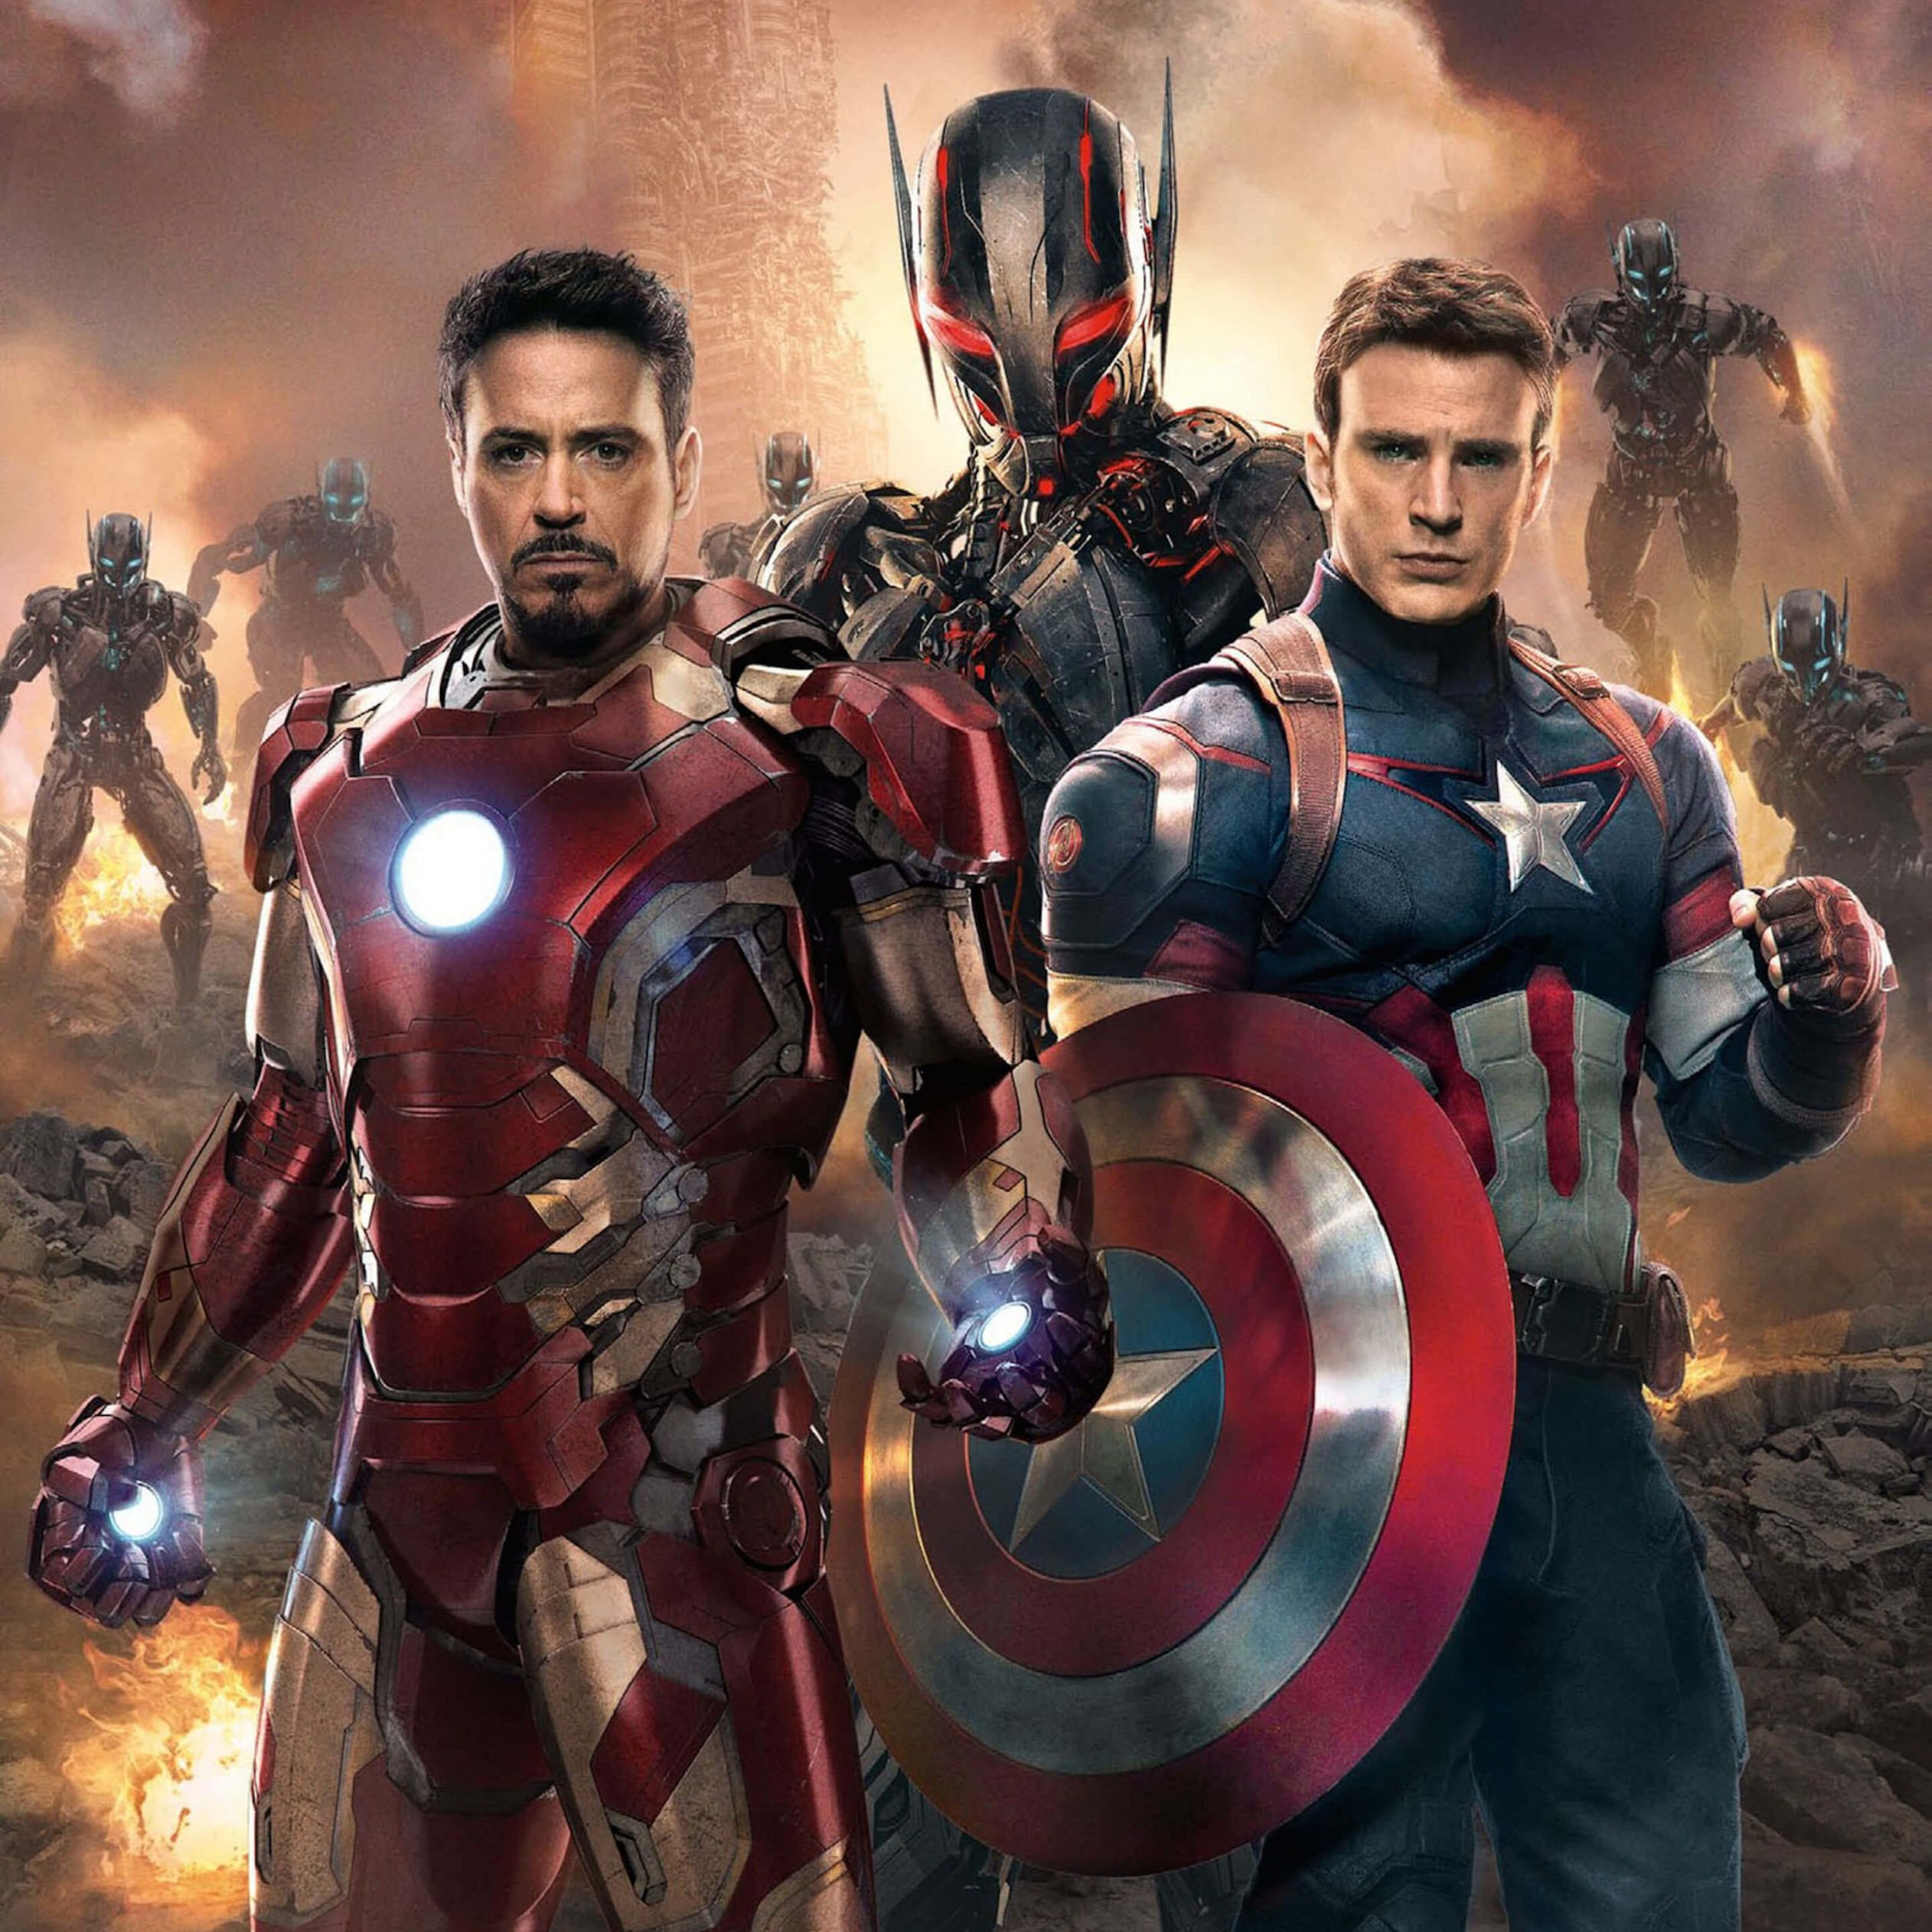 The Avengers: Age of Ultron - Iron Man and Captain America Wallpaper for Apple iPad 4